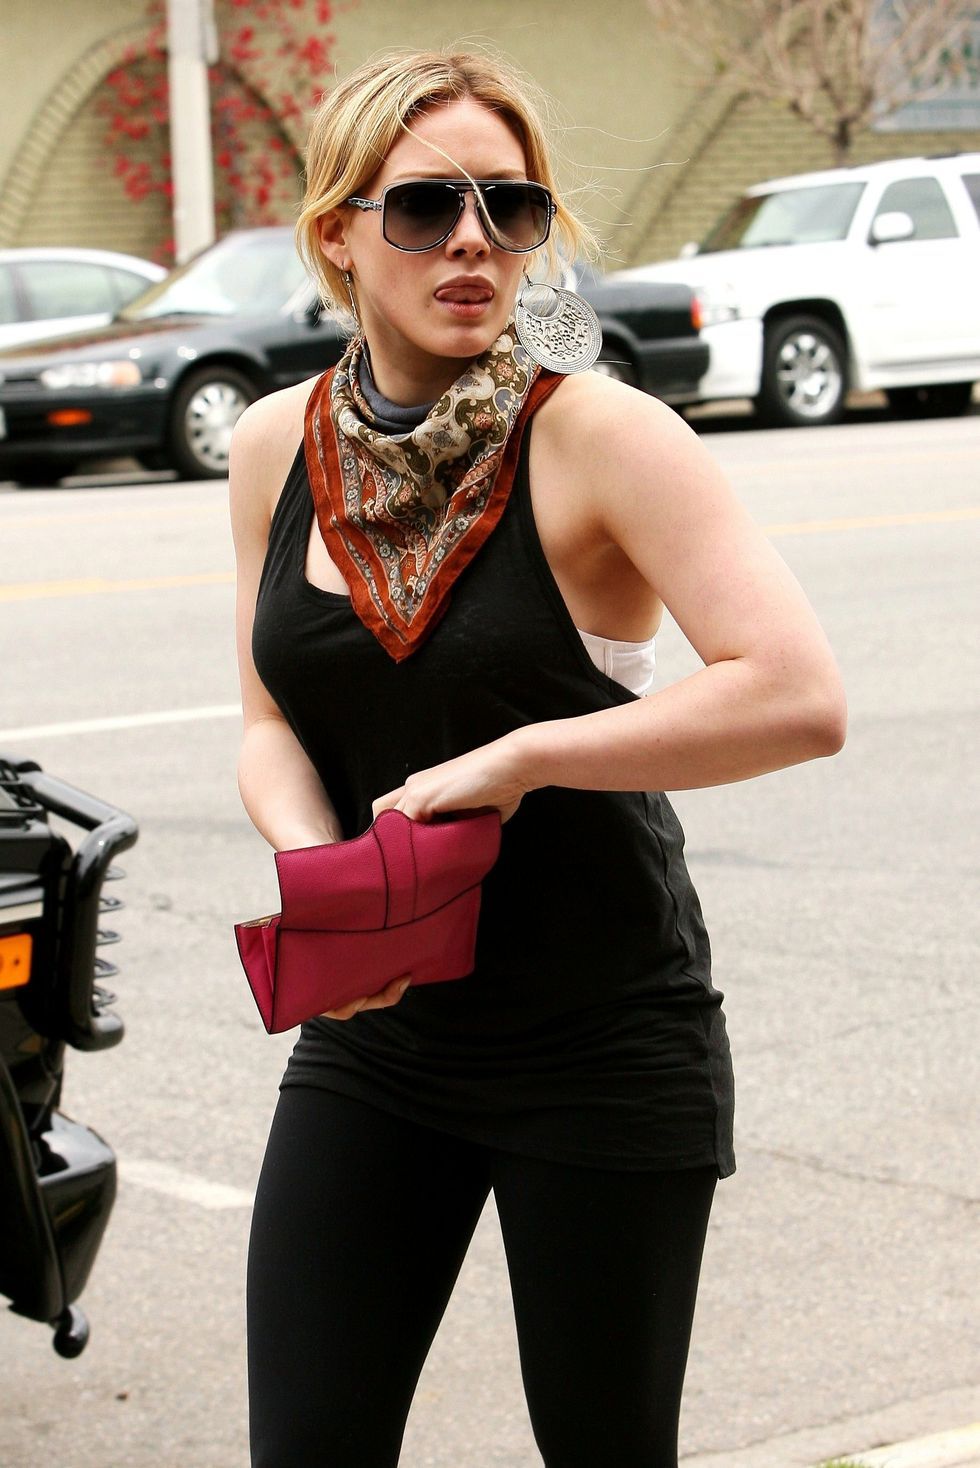 hilary-duff-candids-in-beverly-hills-2-01